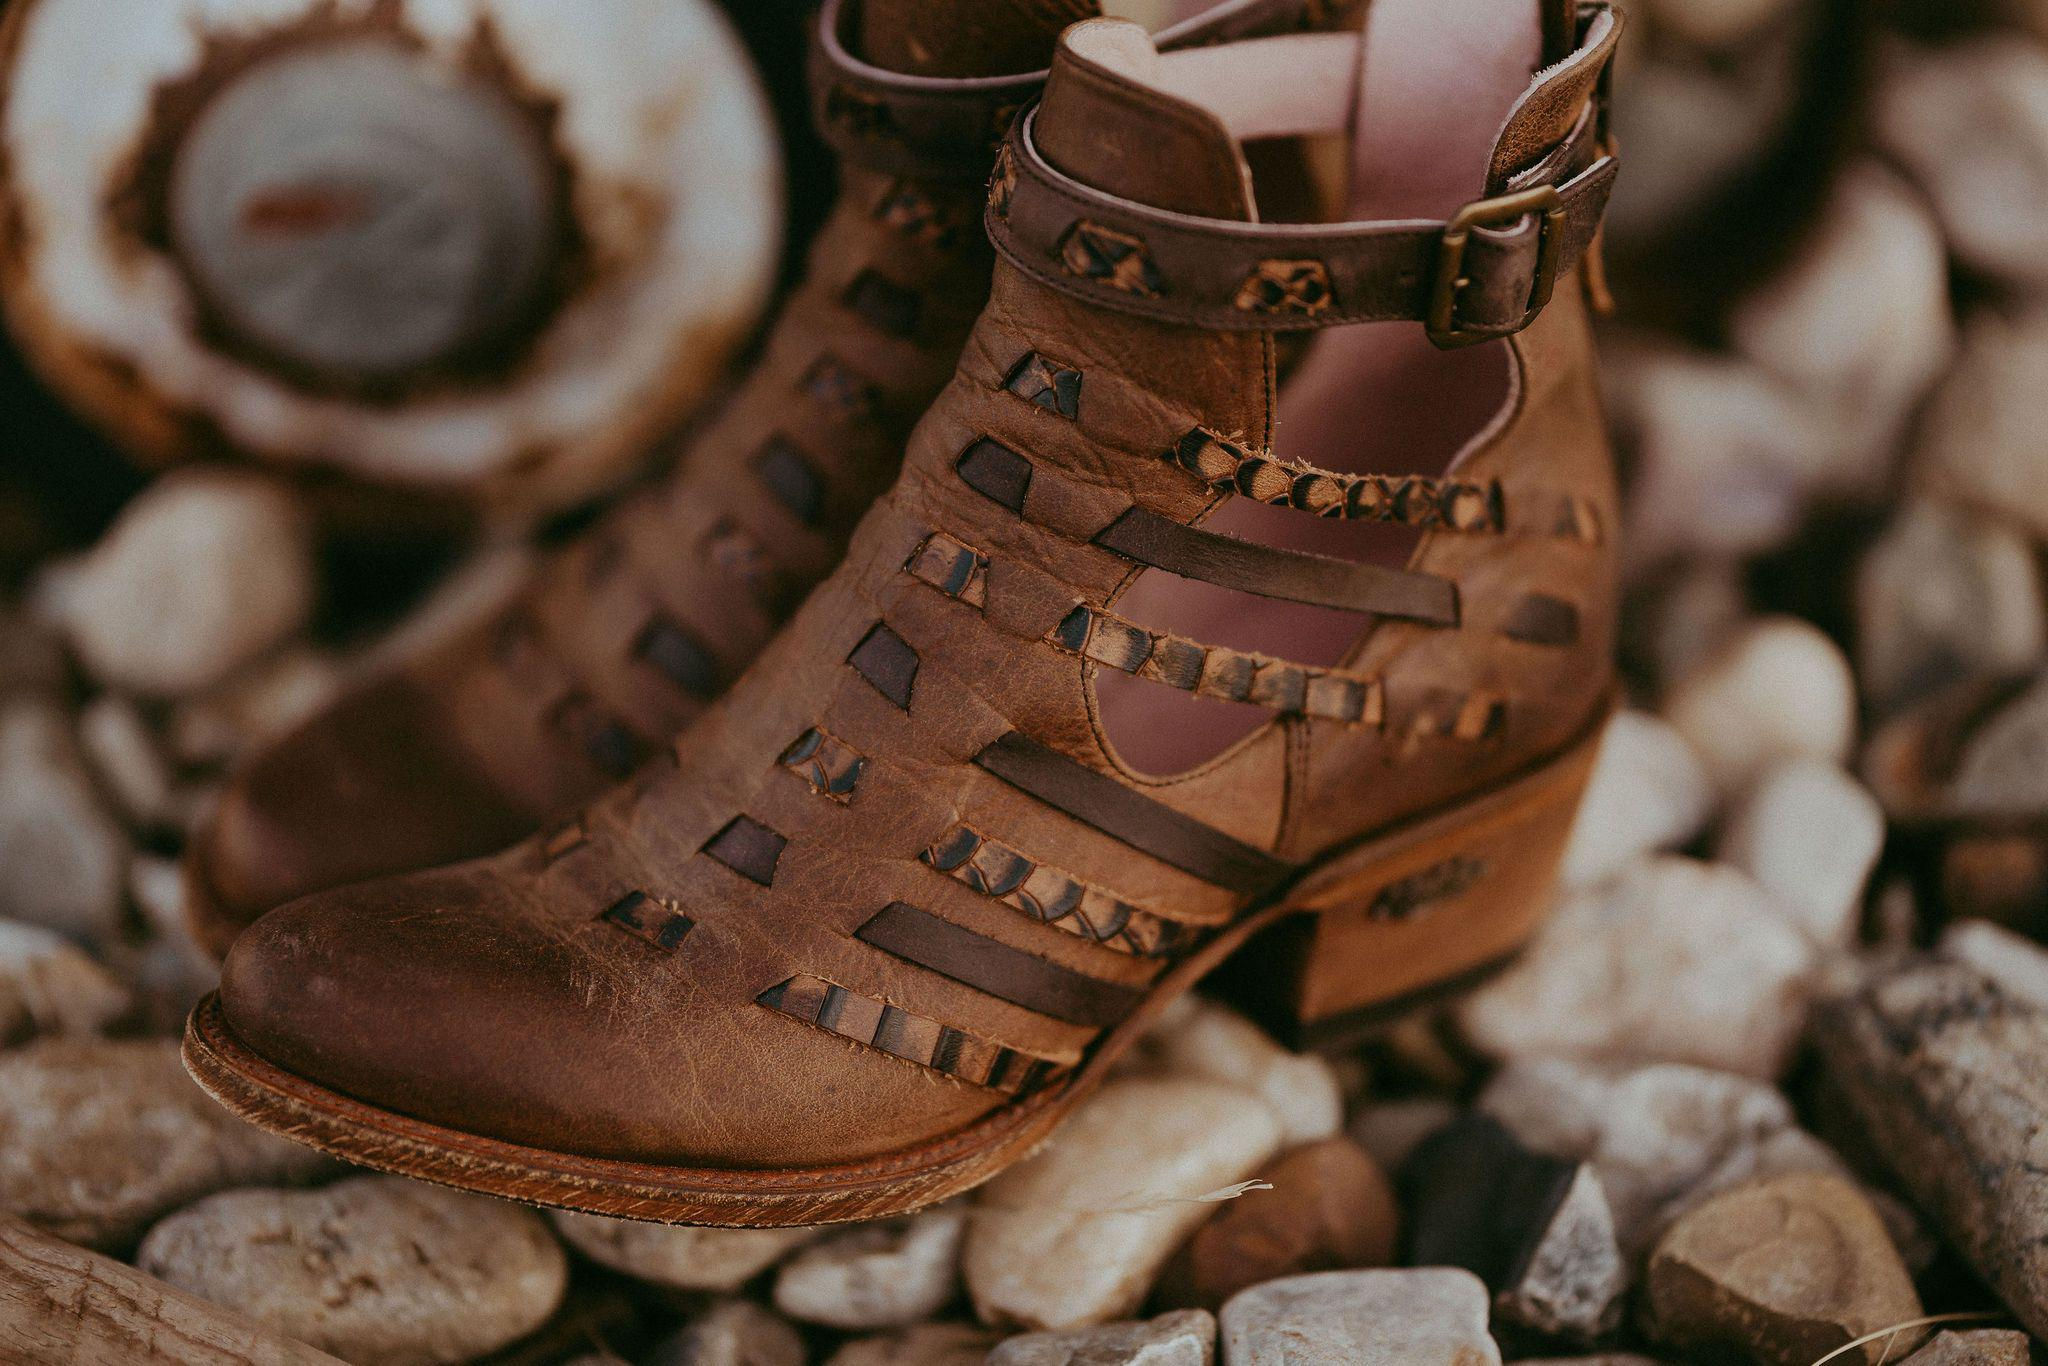 Miss Macie Boots Just Saying - The Inspired Collection